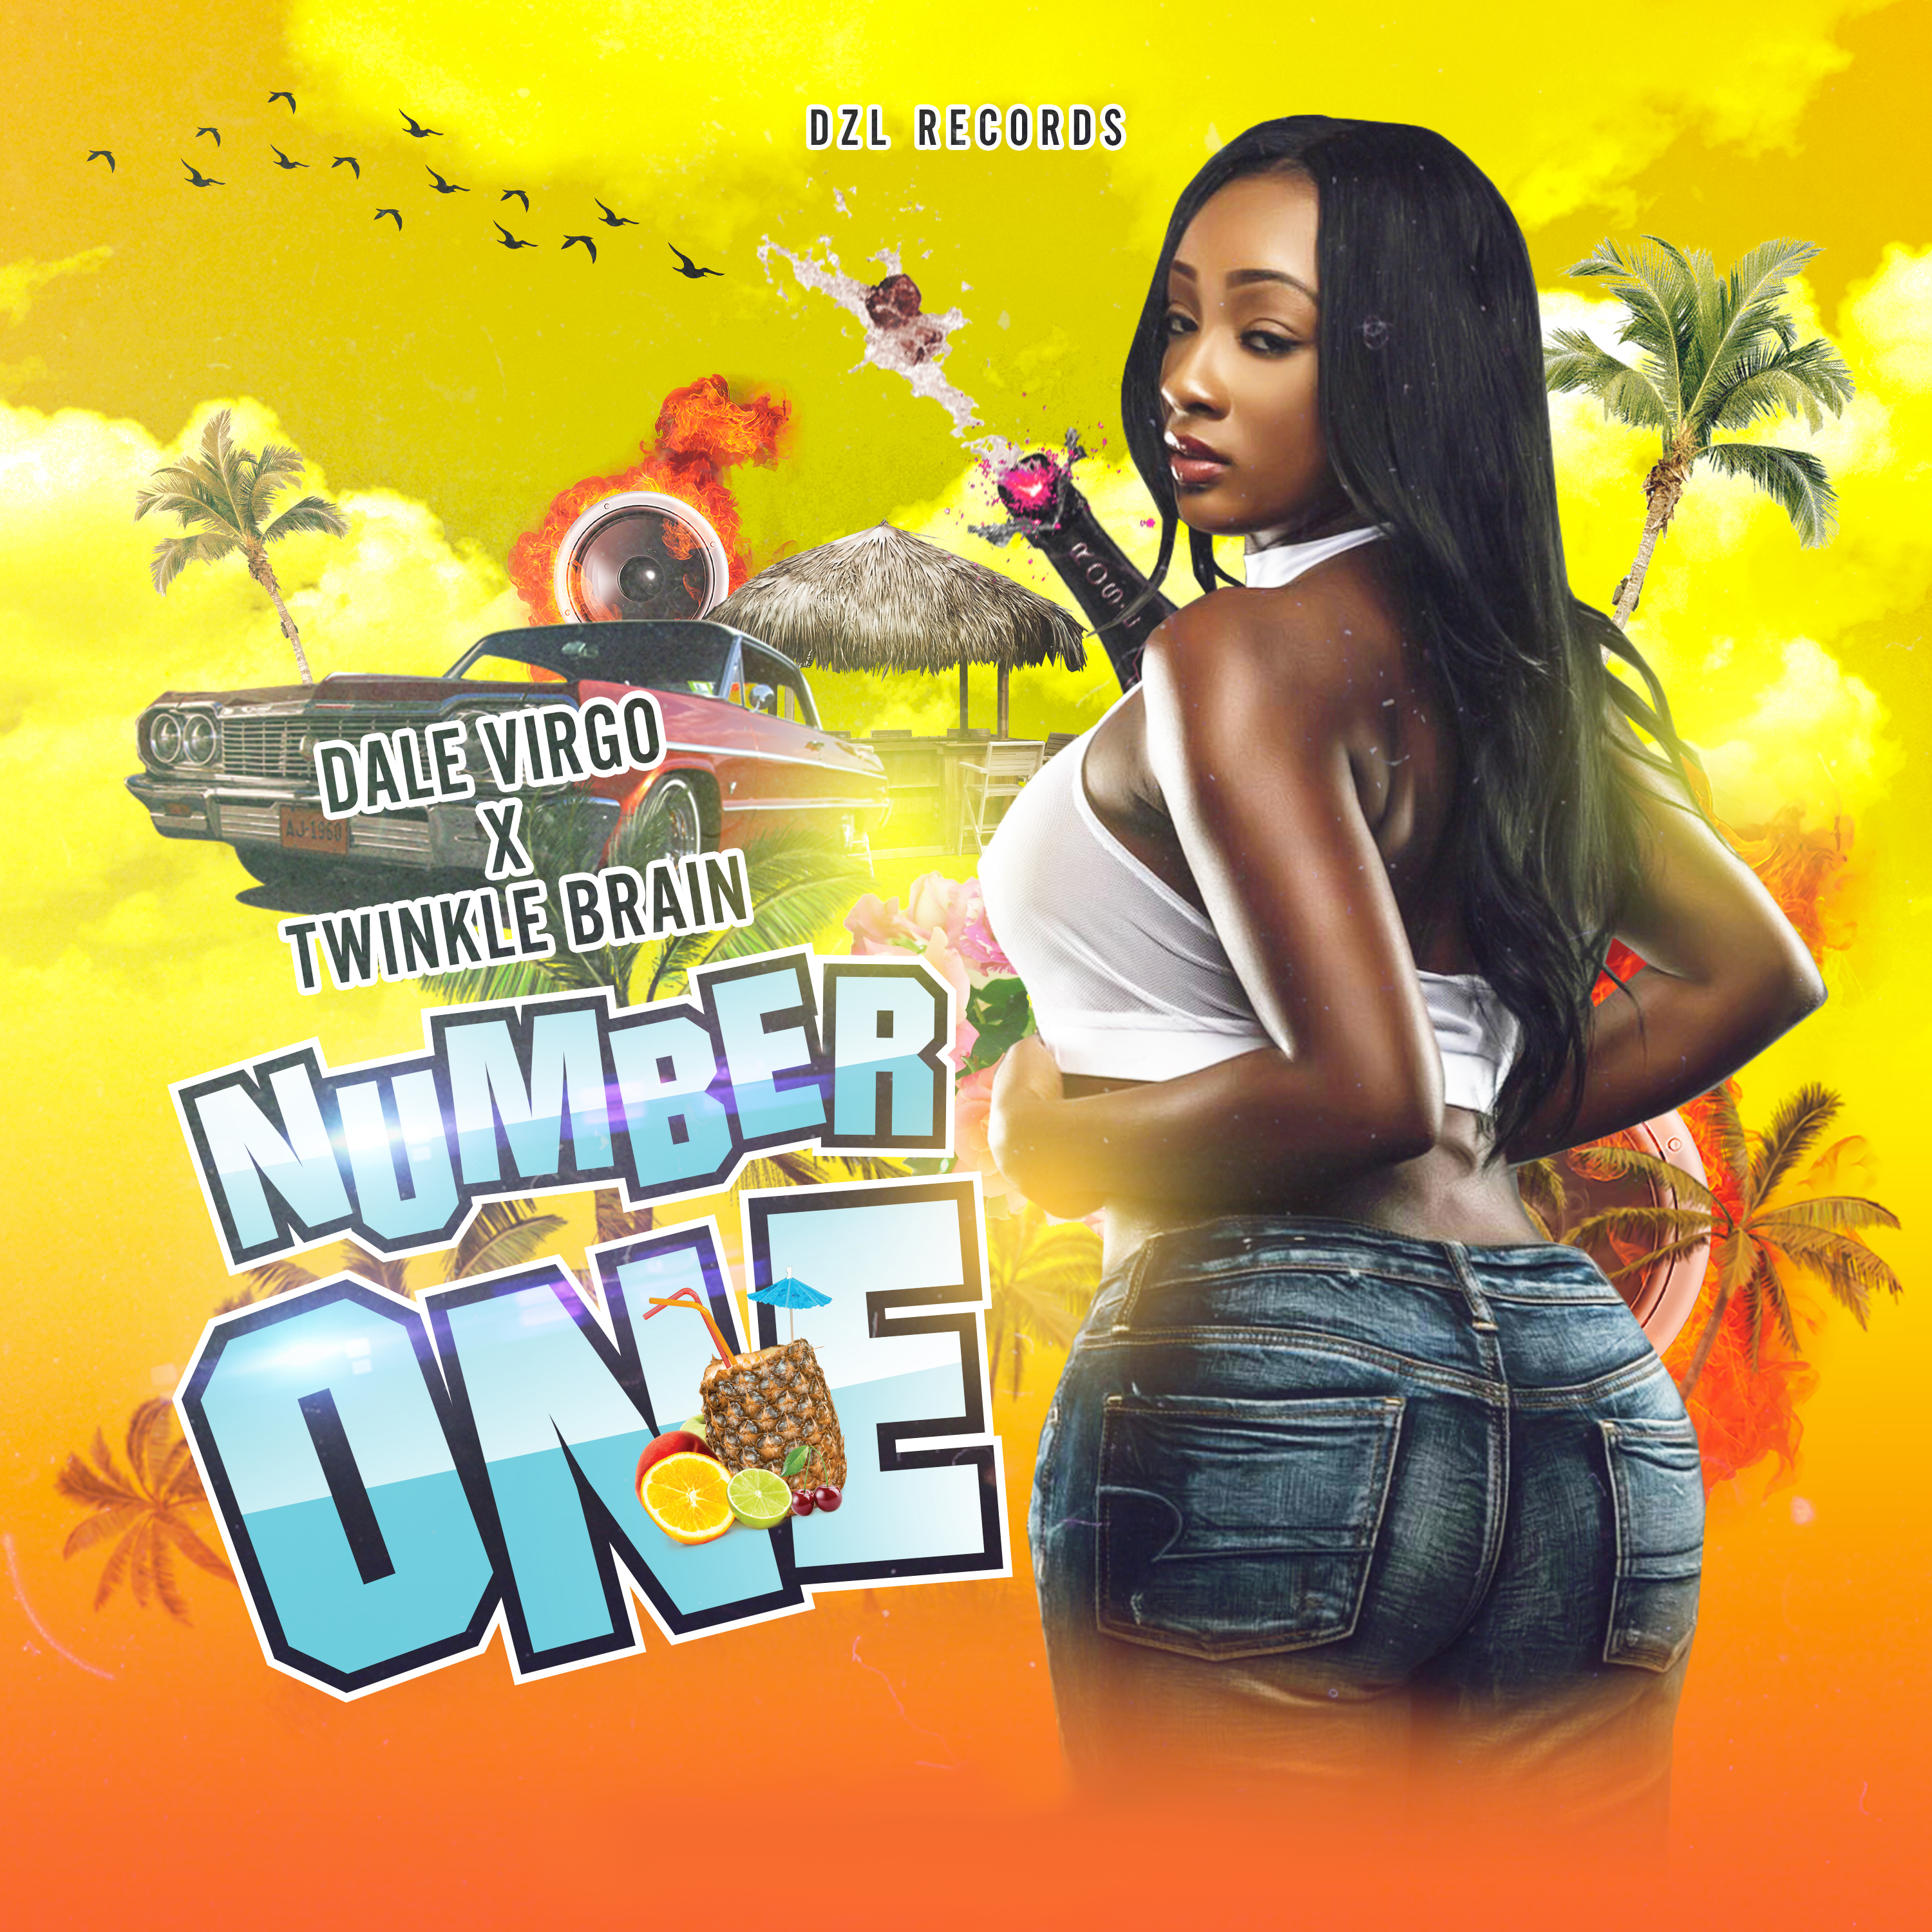 Number_one_dzl_records